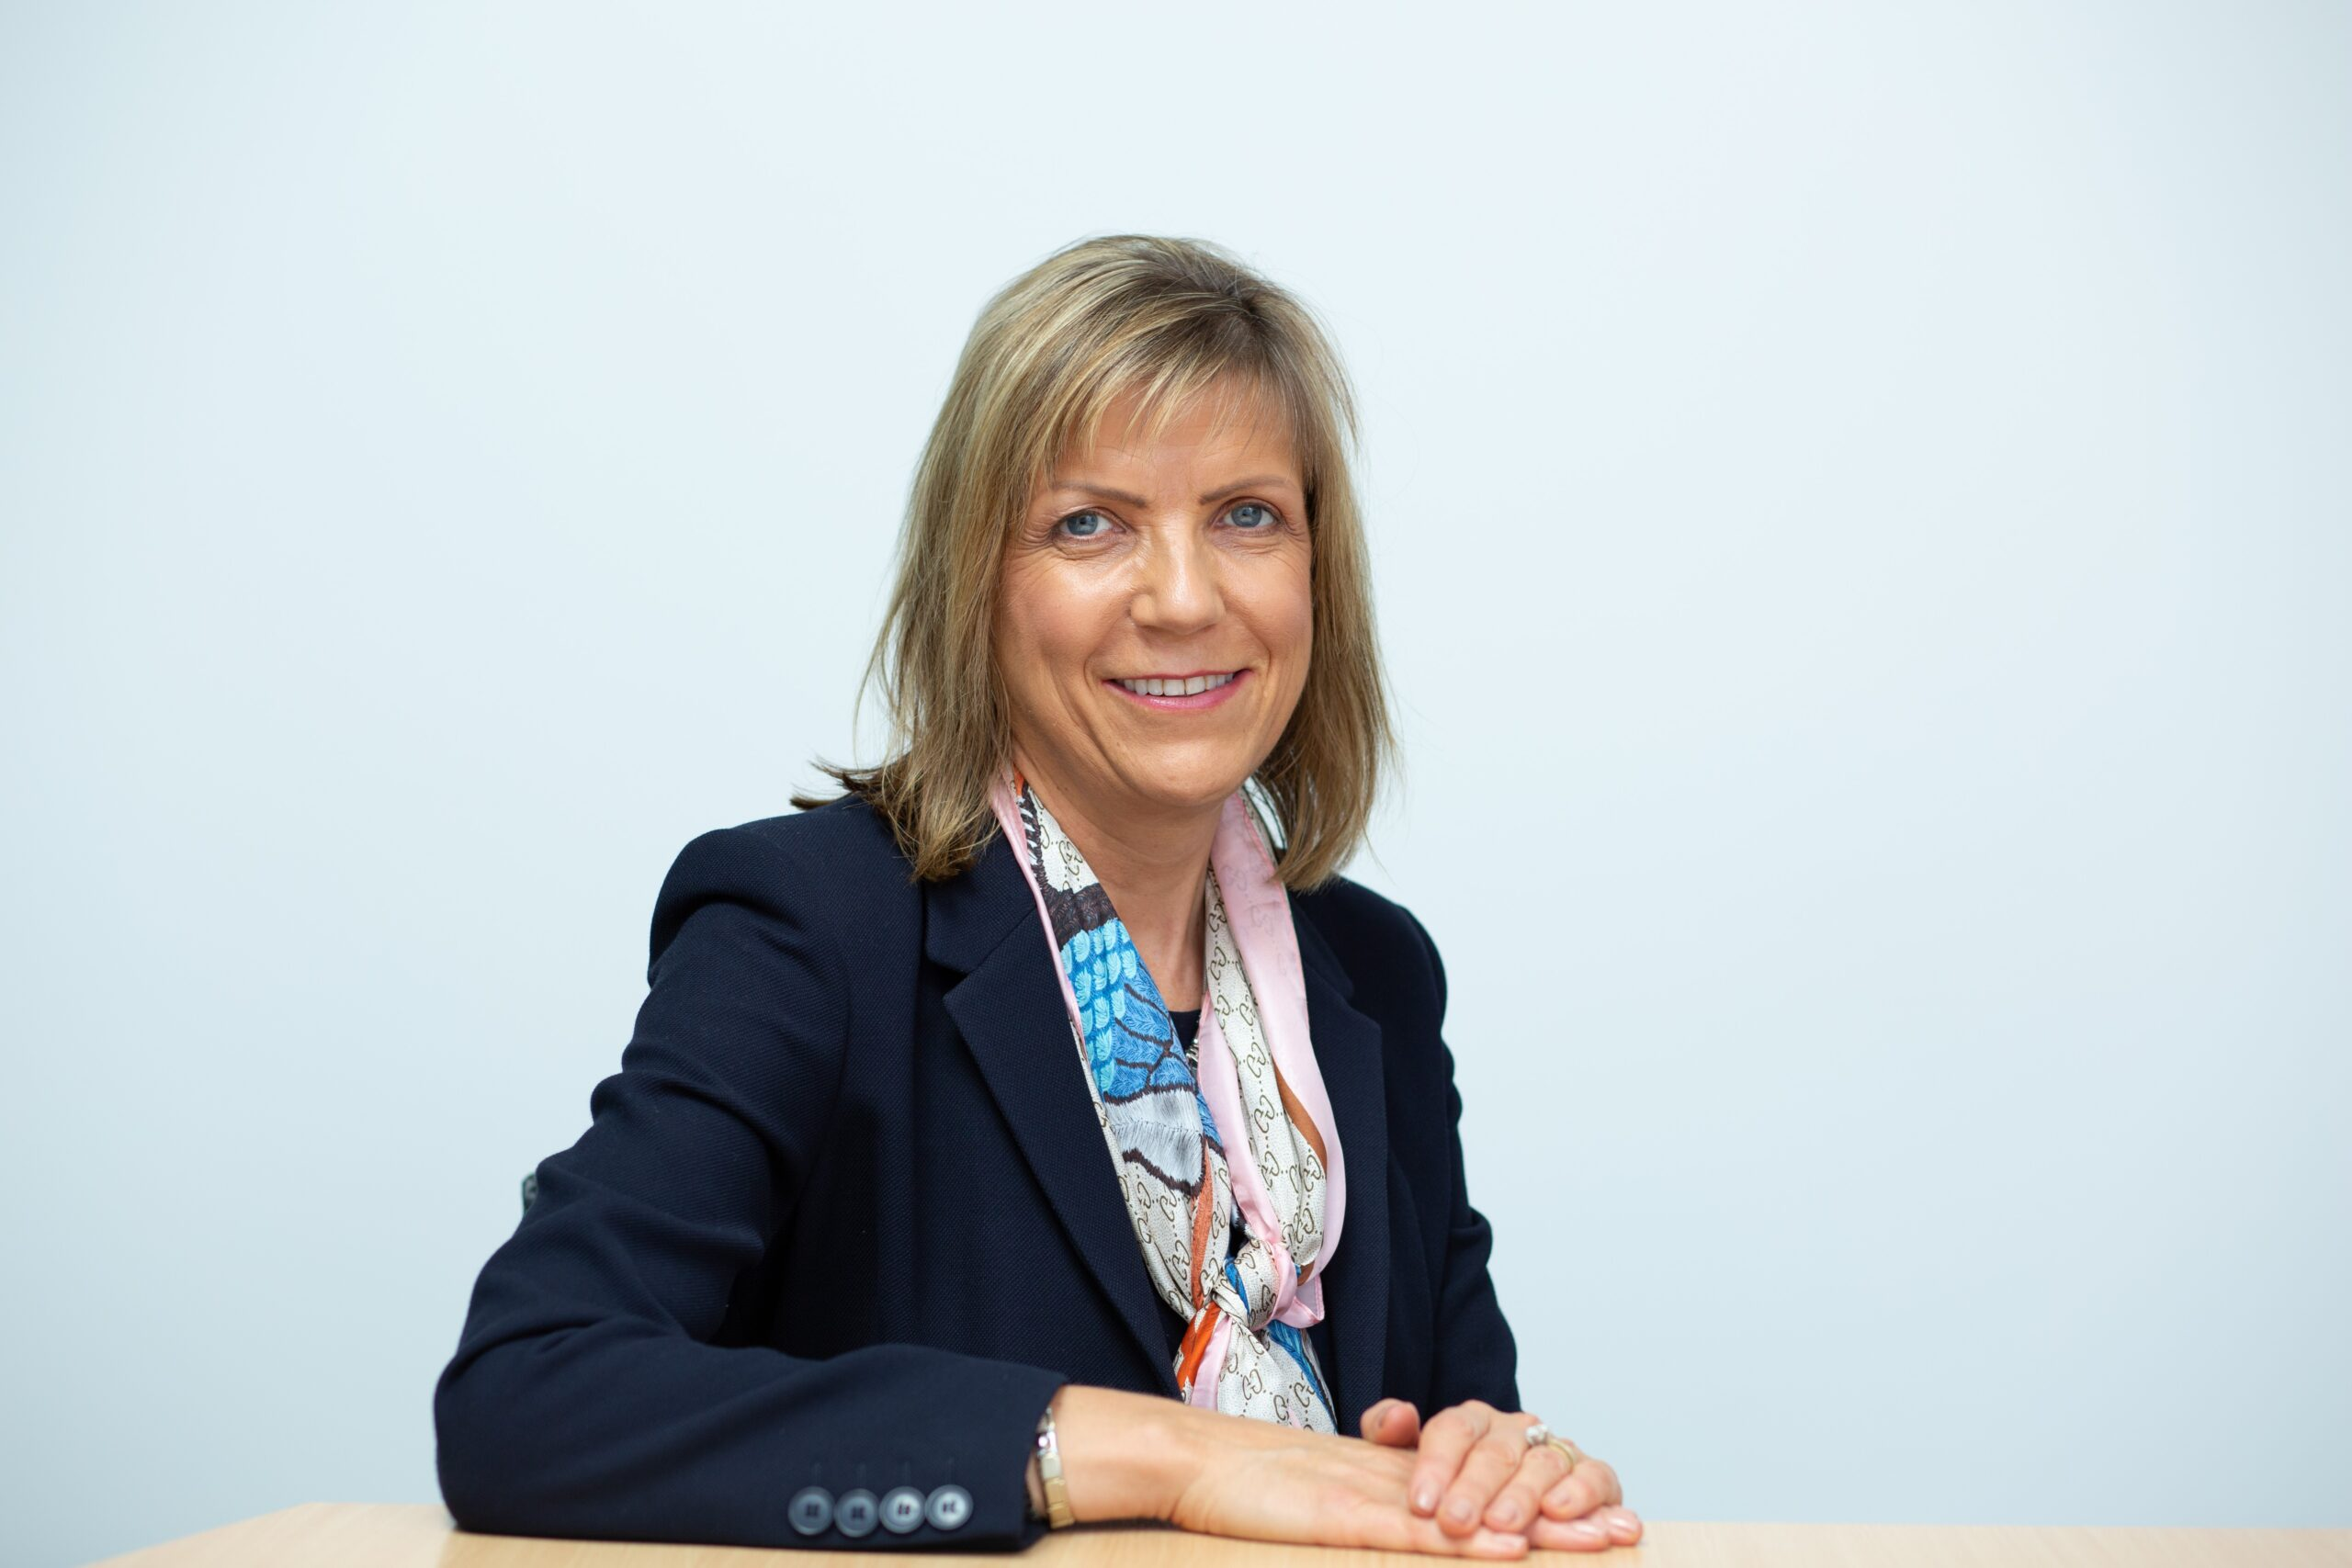 Christine Convy, Founder & Director of Dunedin Advisory Limited